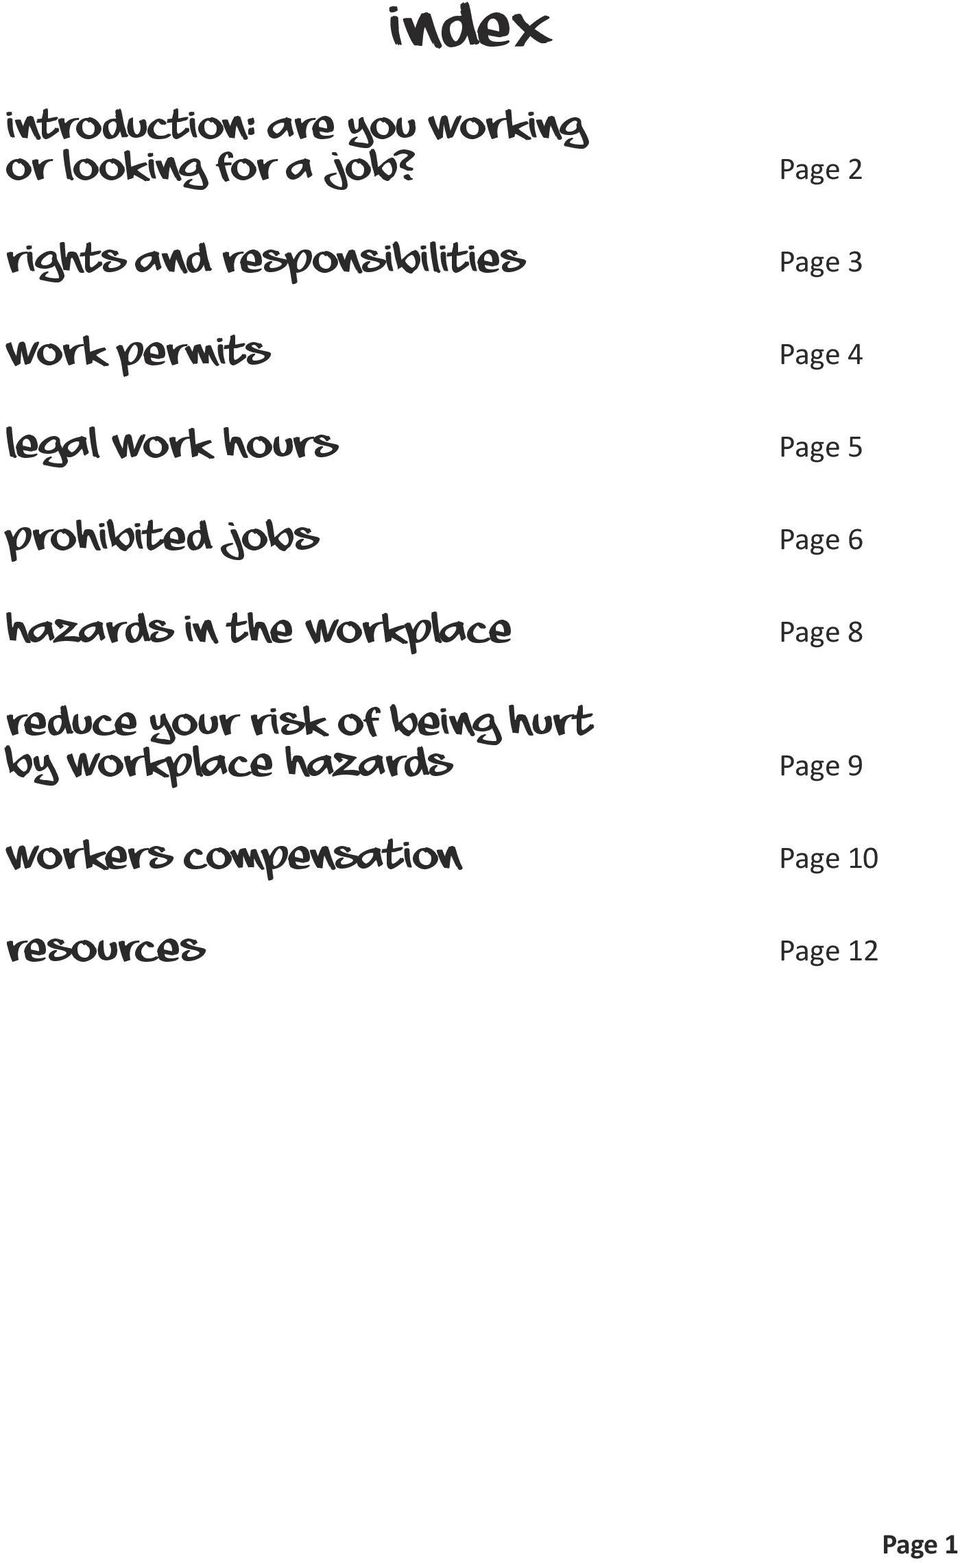 Hours Page 5 Prohibited Jobs Page 6 Hazards in the Workplace Page 8 Reduce